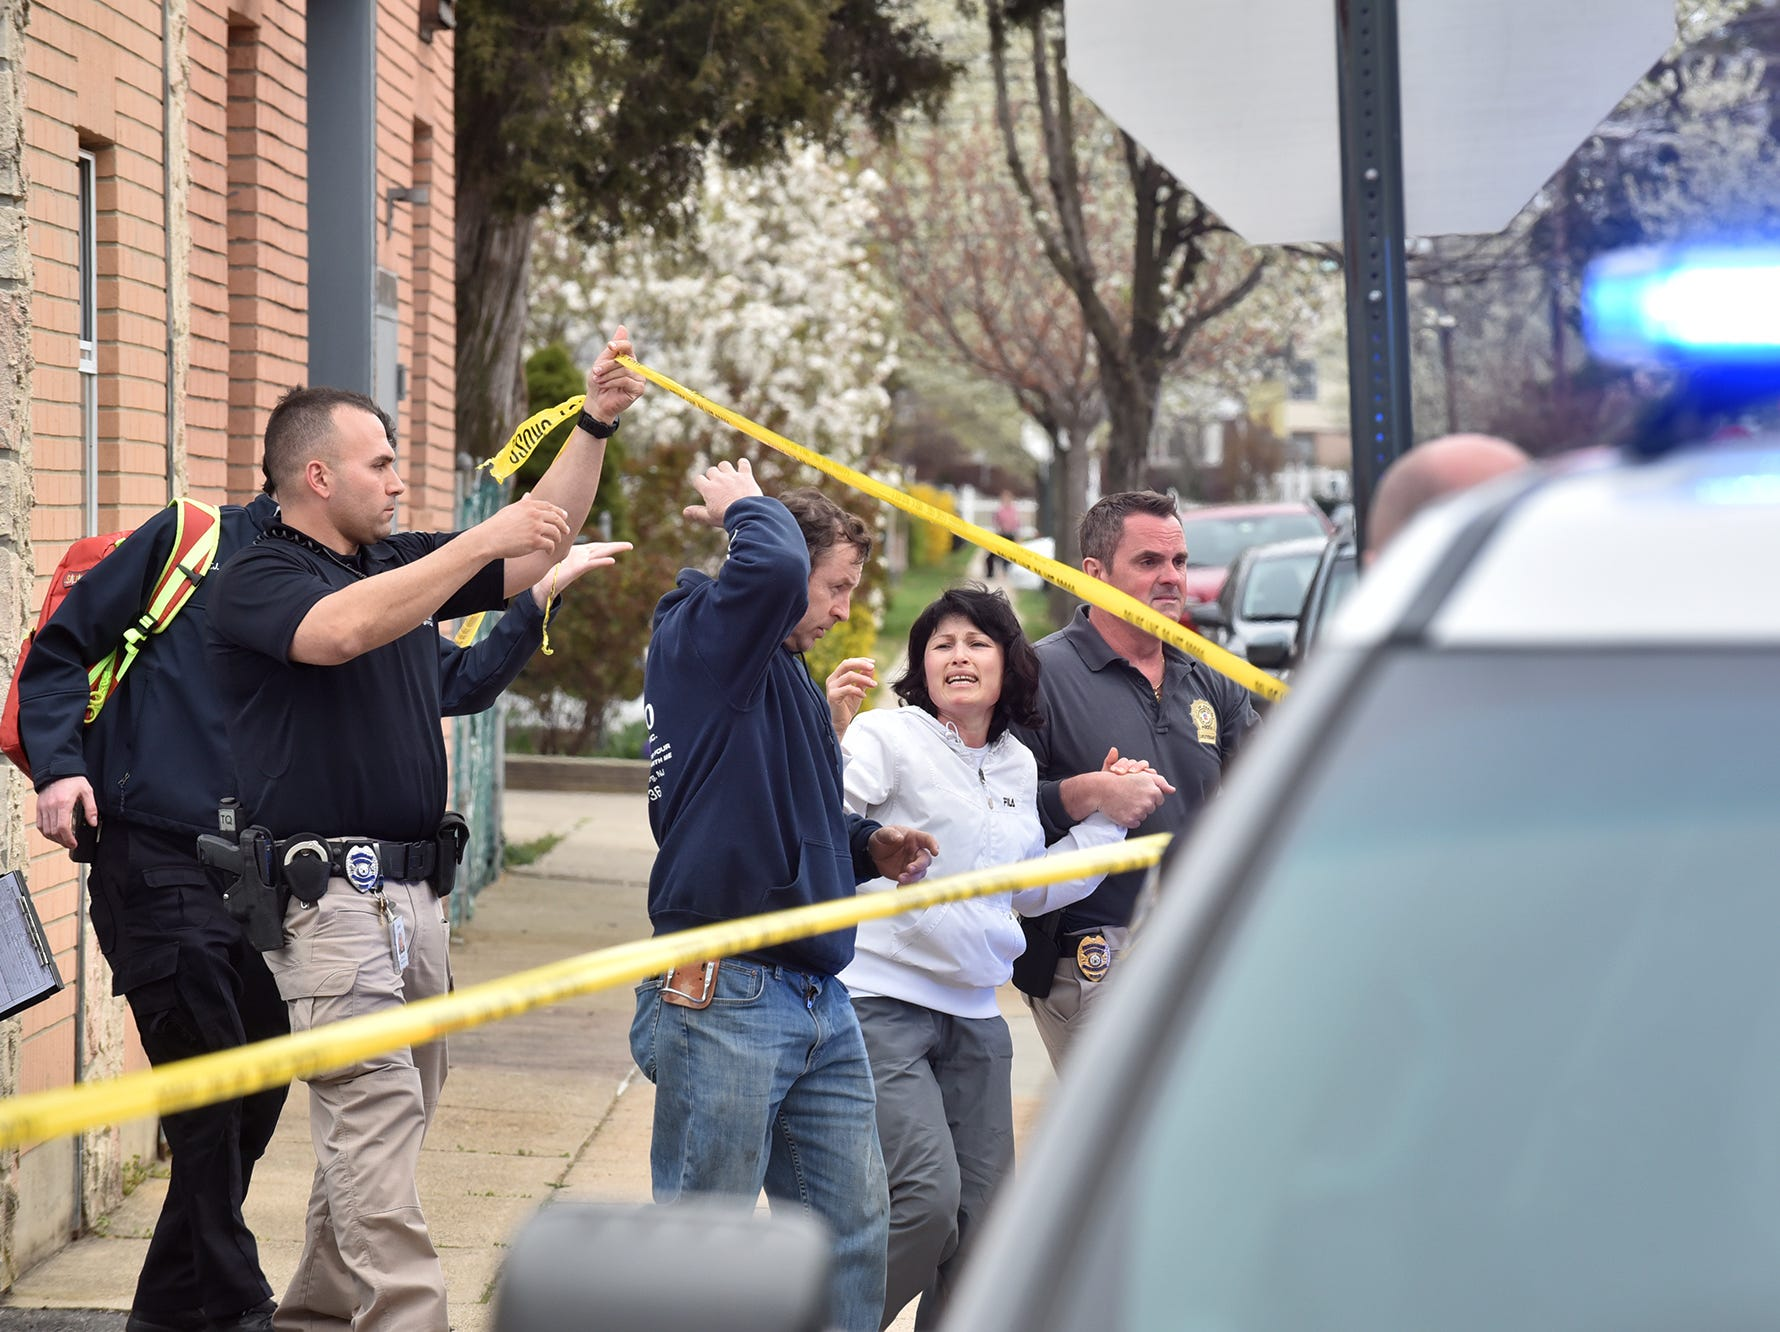 BREAKING NEWS An unidentified mother of a child who got fatally run over by a vehicle, is taken away upon arriving on the scene of the accident in Garfield, NJ.